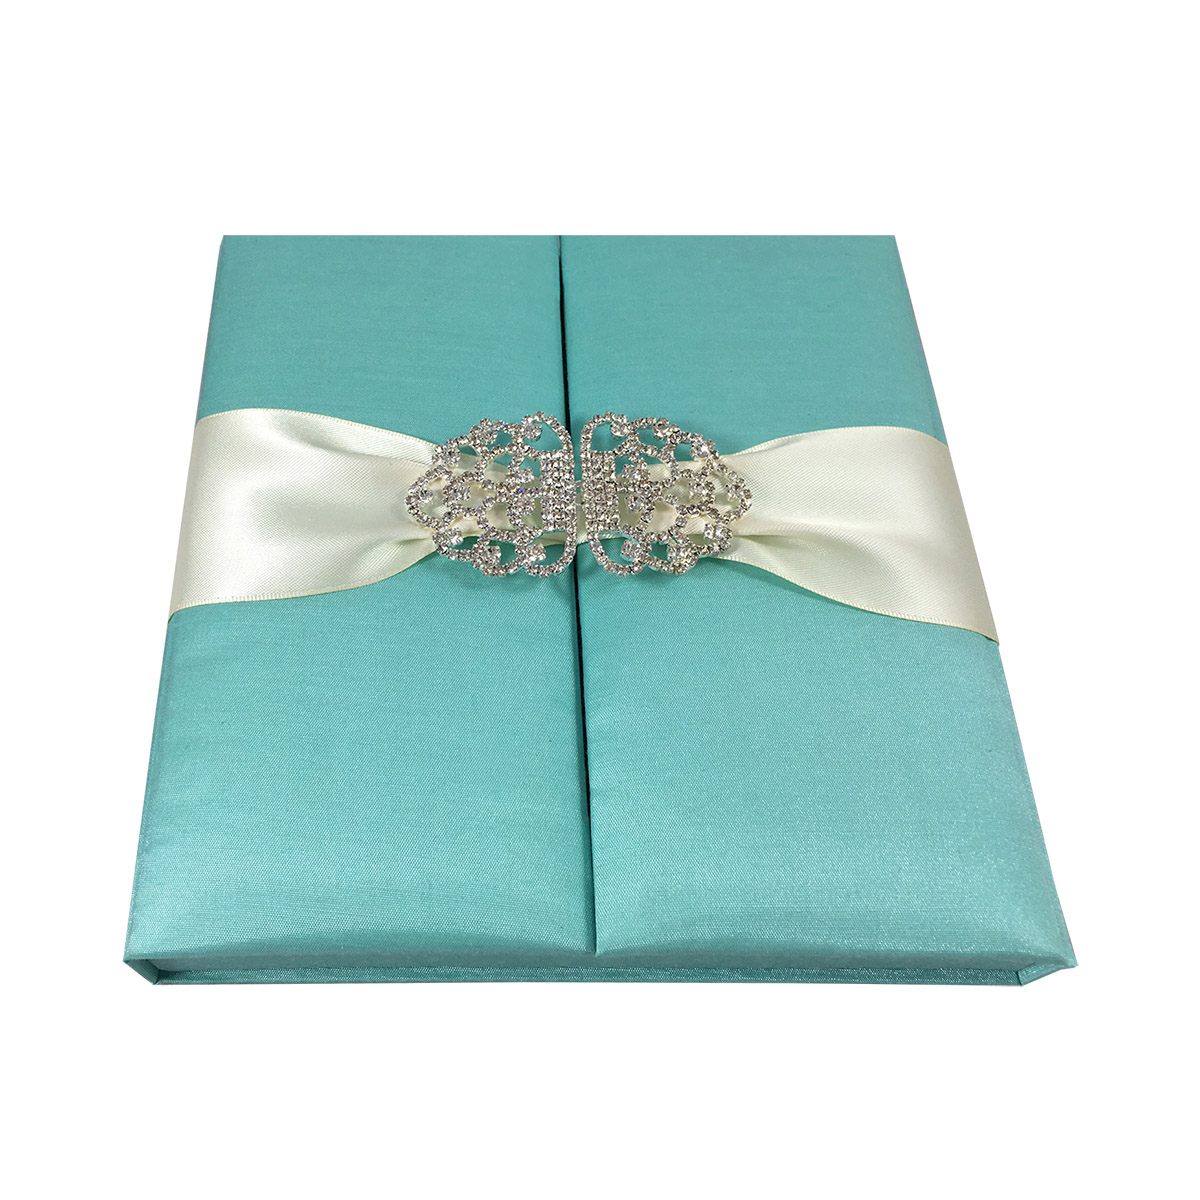 Luxury Tiffany Wedding Box